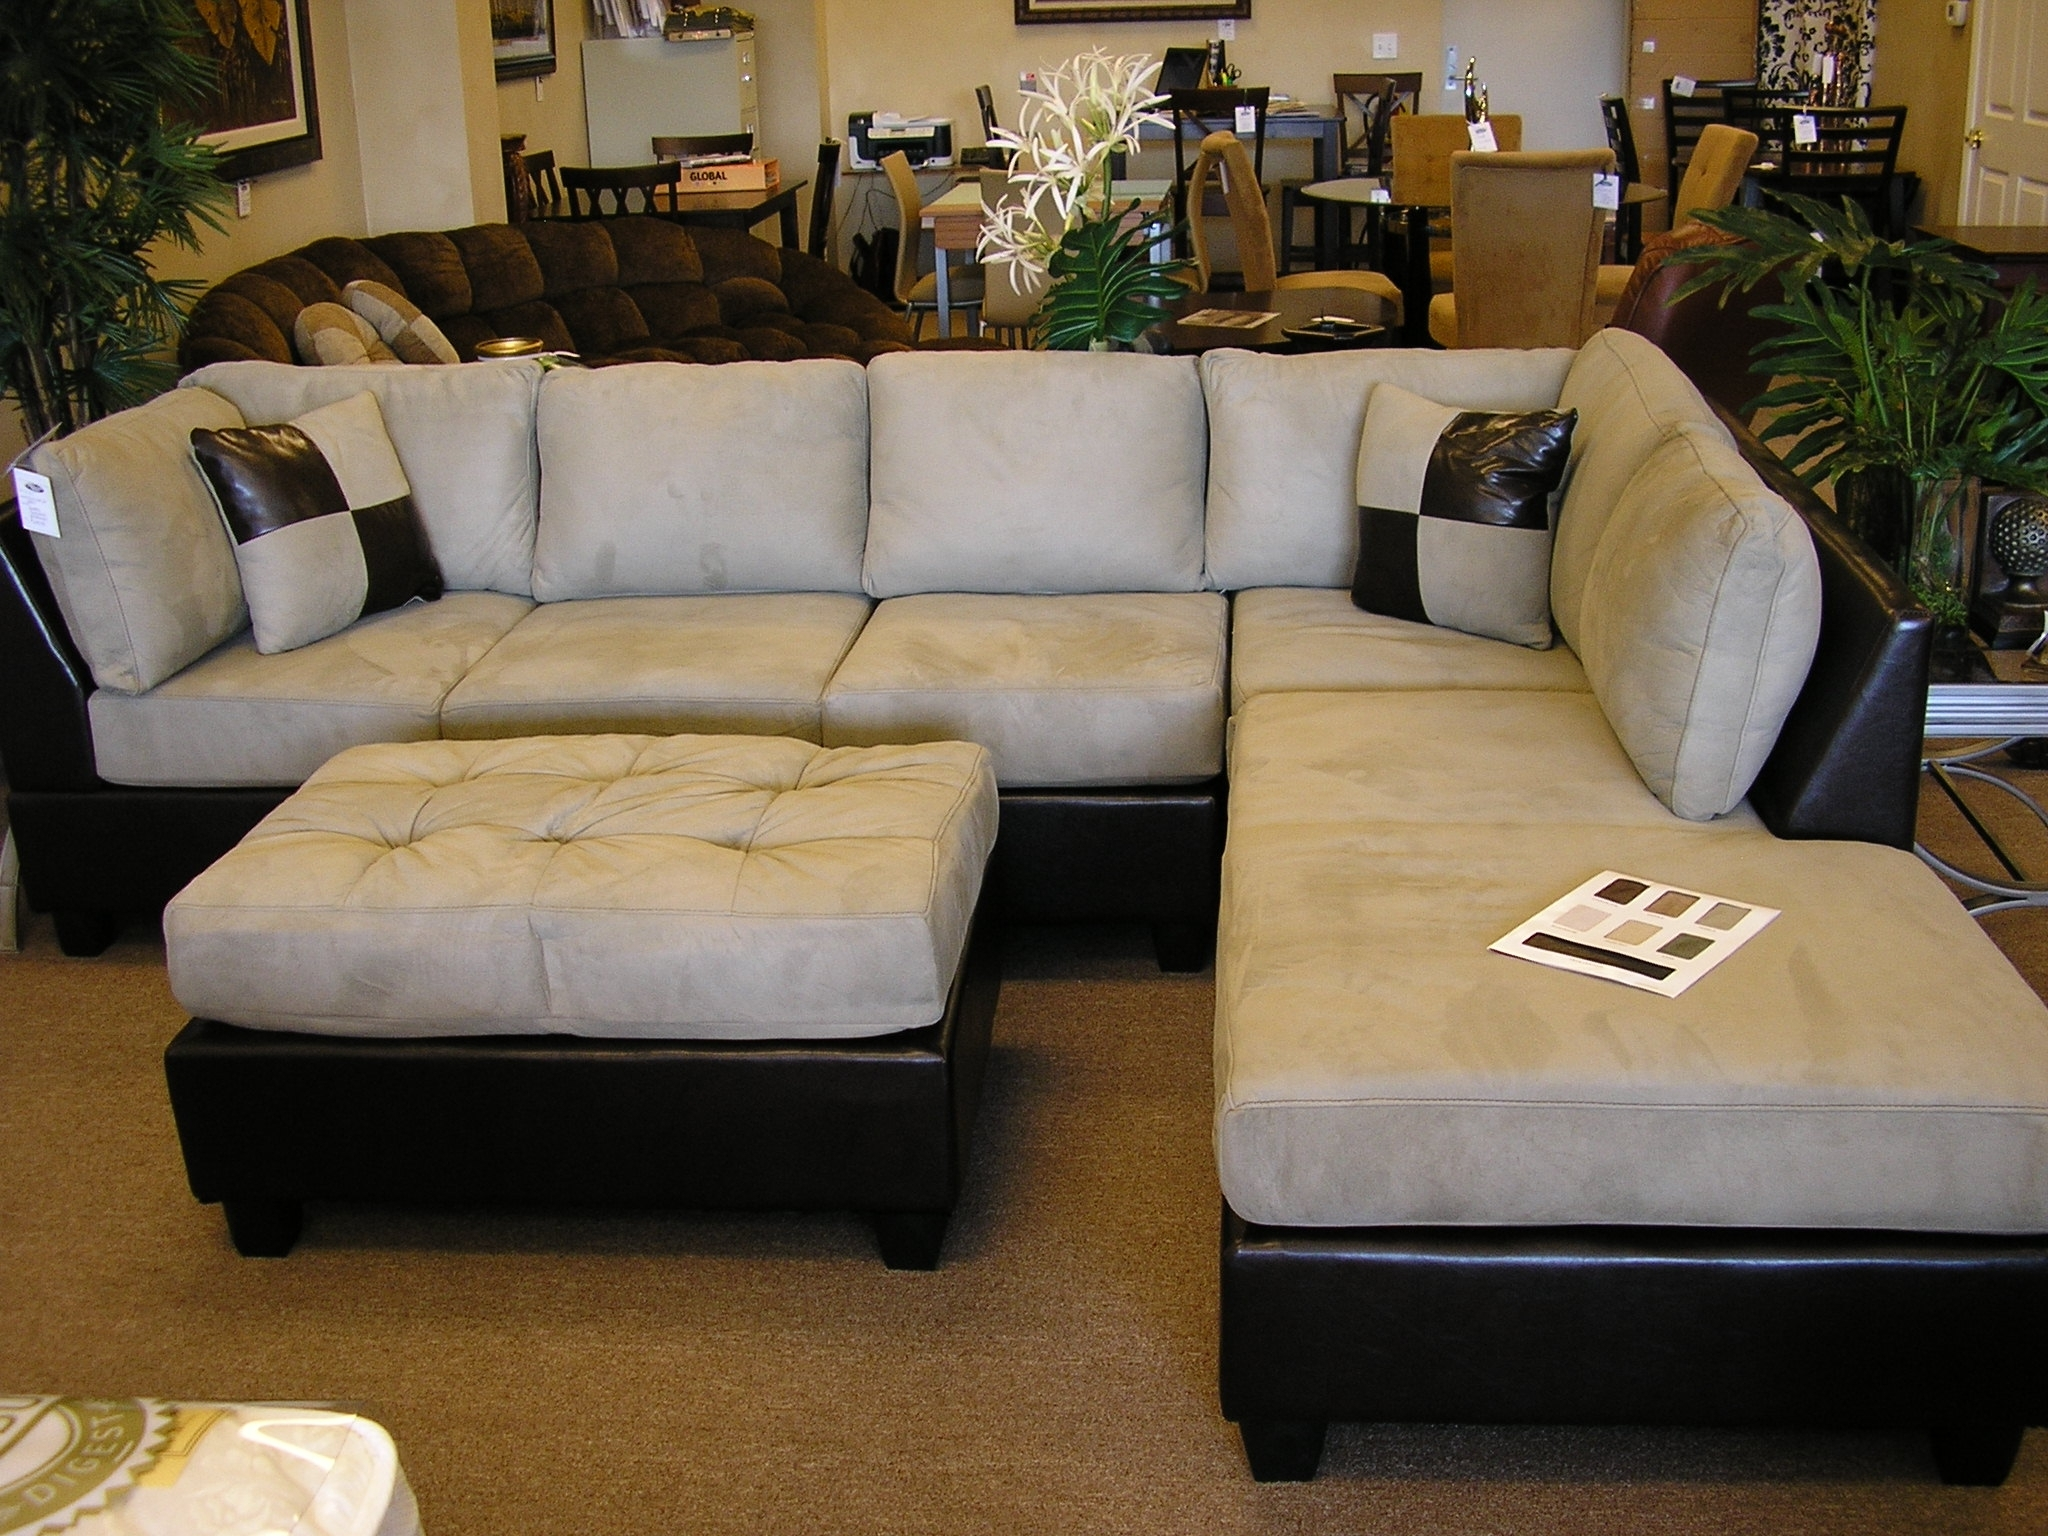 Uncategorized : Sectional Ottoman Set Ideas For Lovely Sofa 3 Throughout Sofas With Chaise And Ottoman (View 8 of 10)